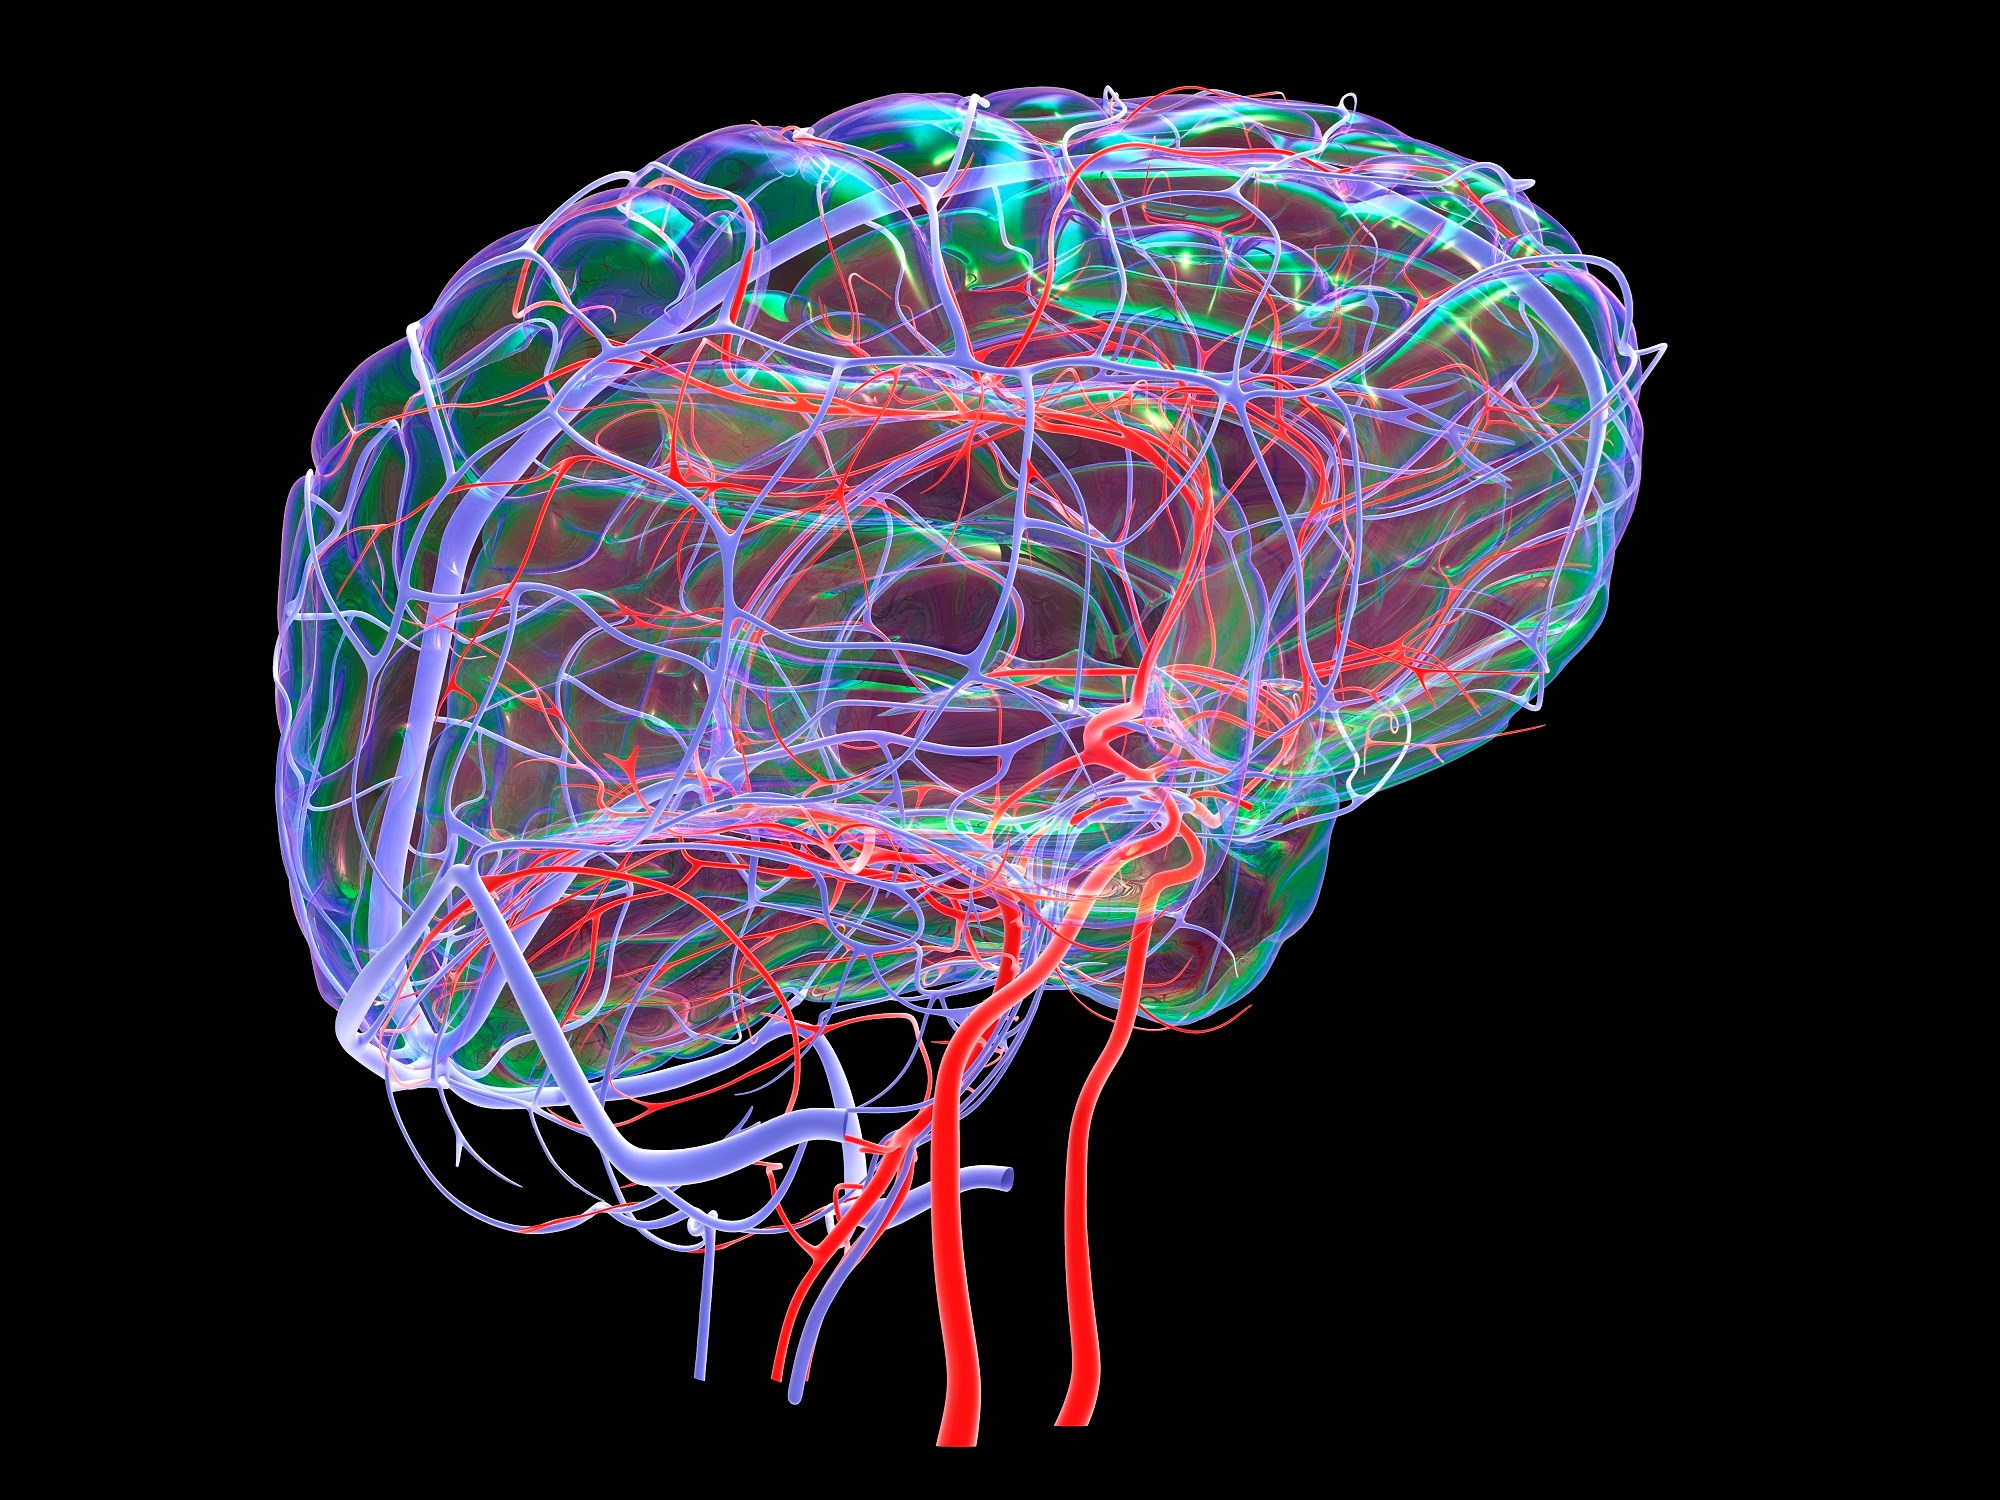 Systemic Vascular Health Associated With Widespread Brain Changes